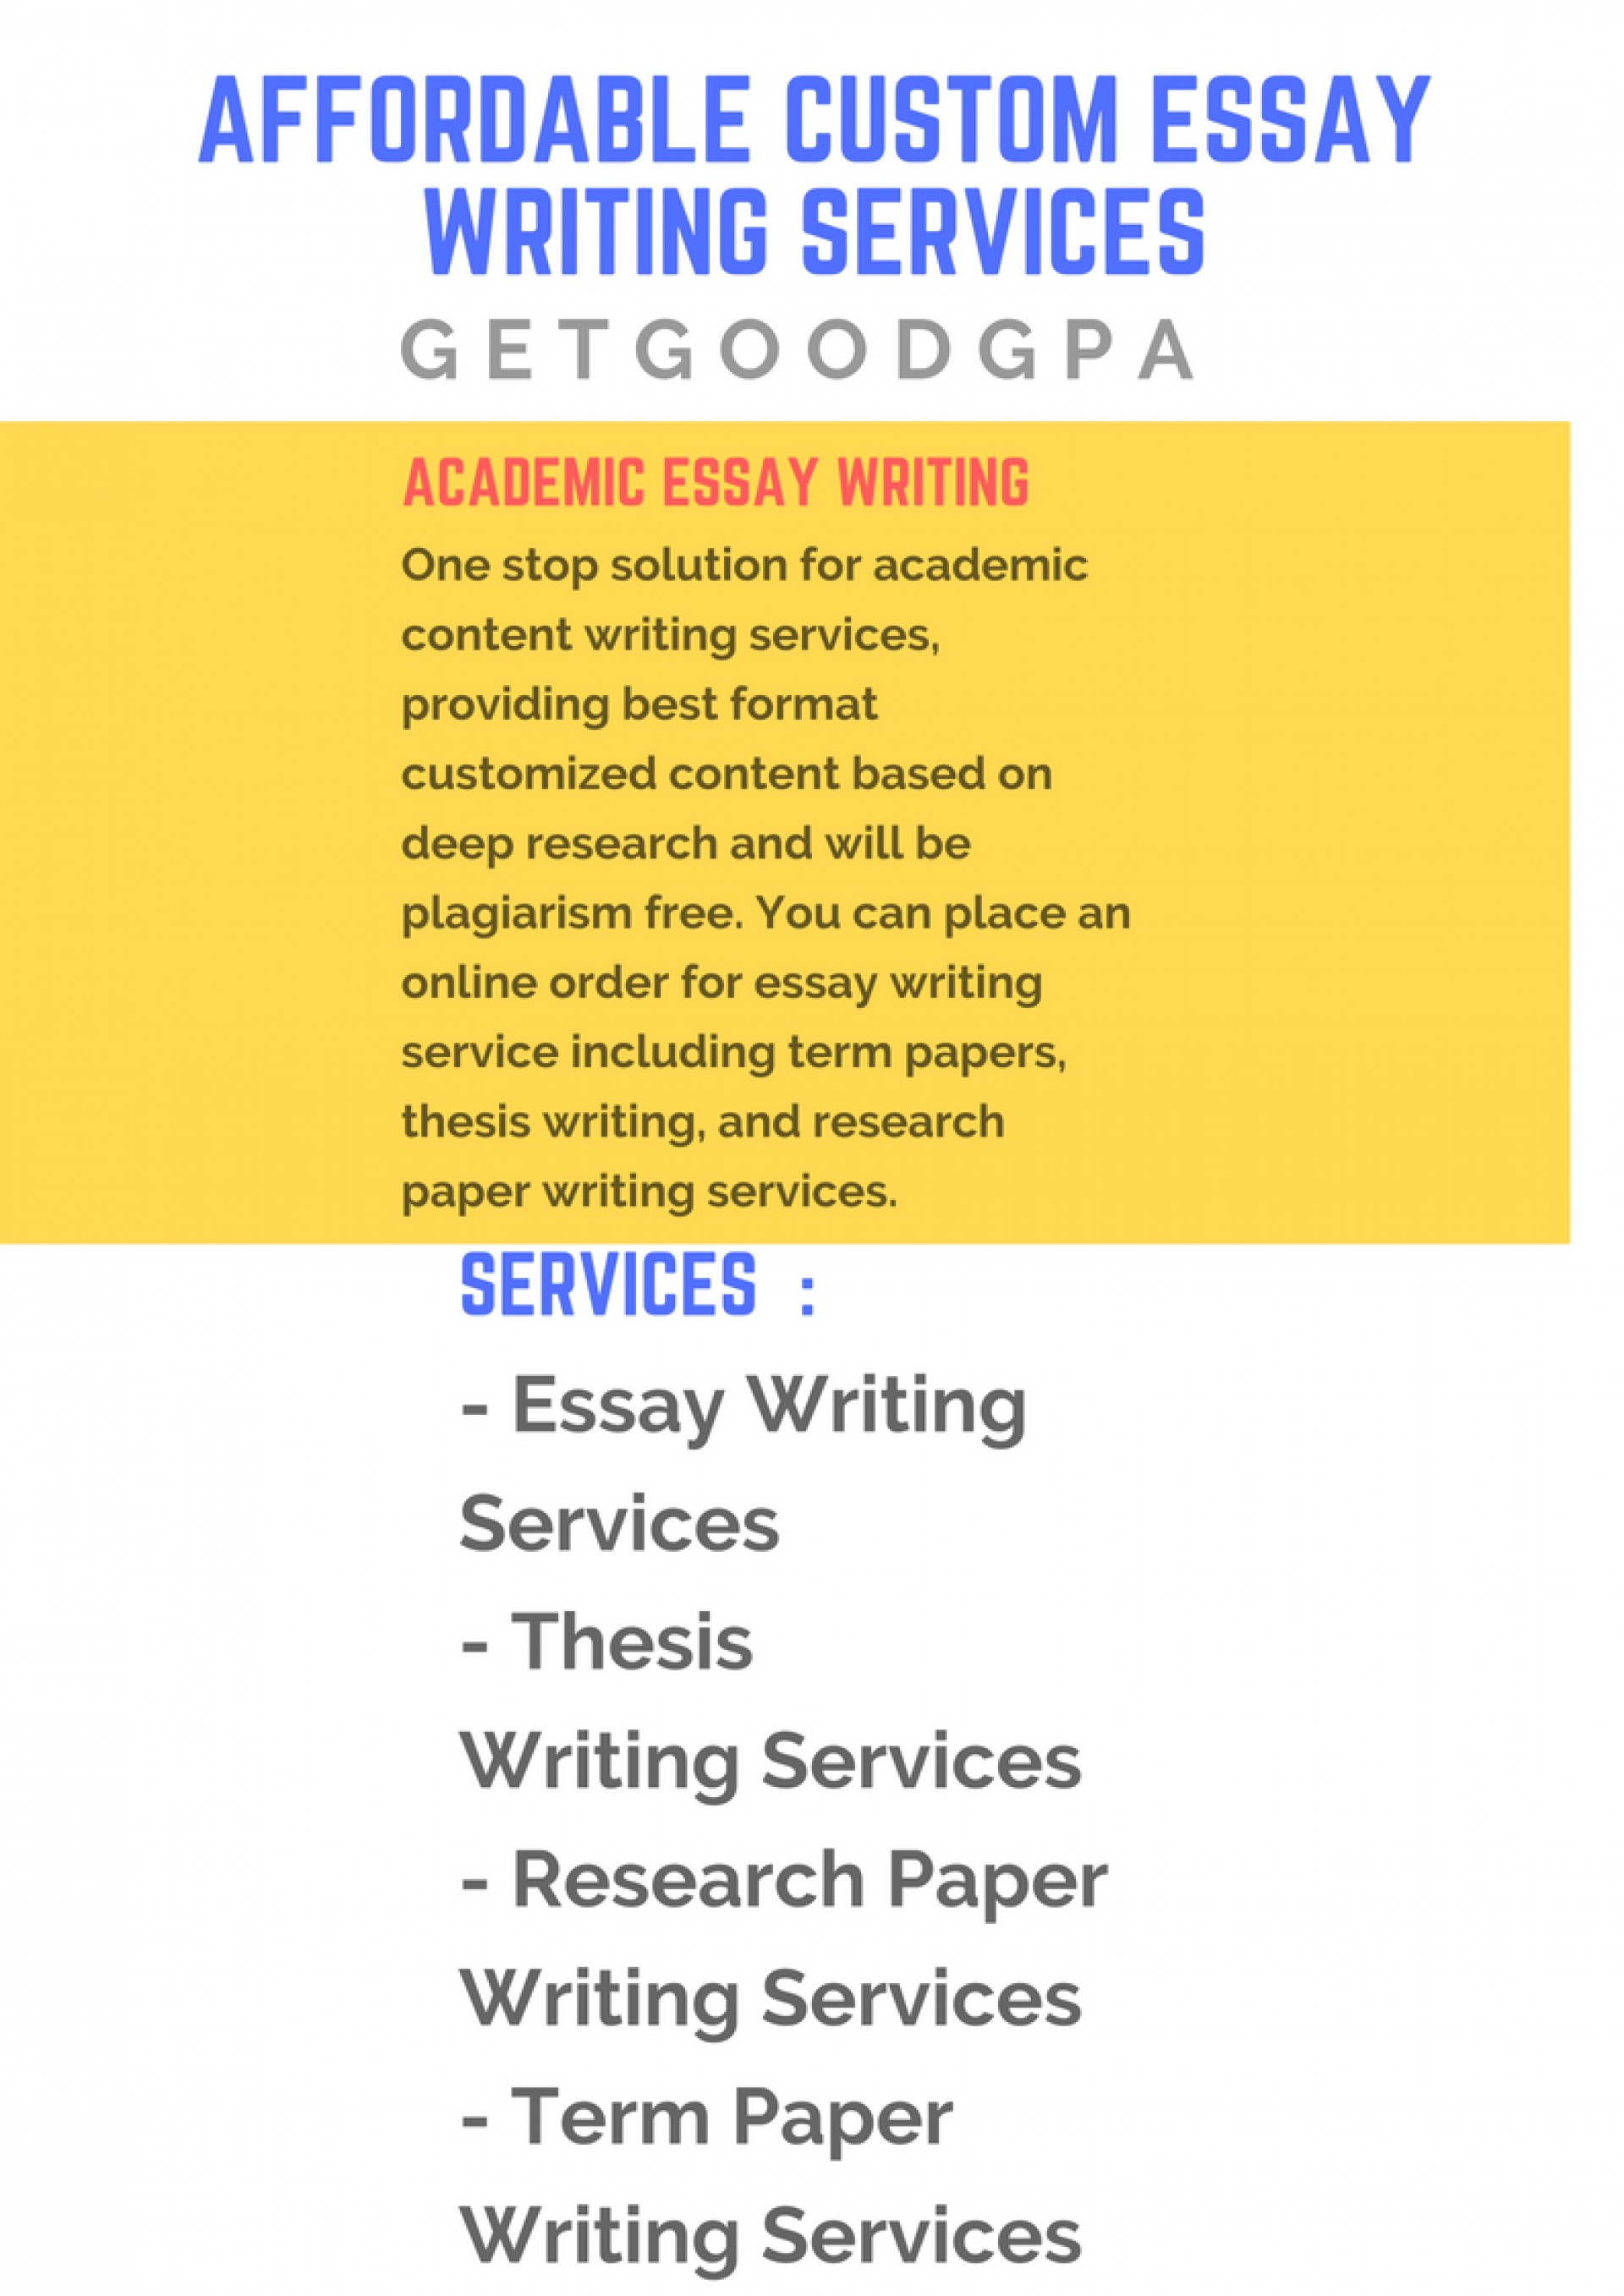 002 1p24u5izogrgxlkfzqmxvgq Research Paper Writing Dreaded Service Services In India Online Chennai 1920